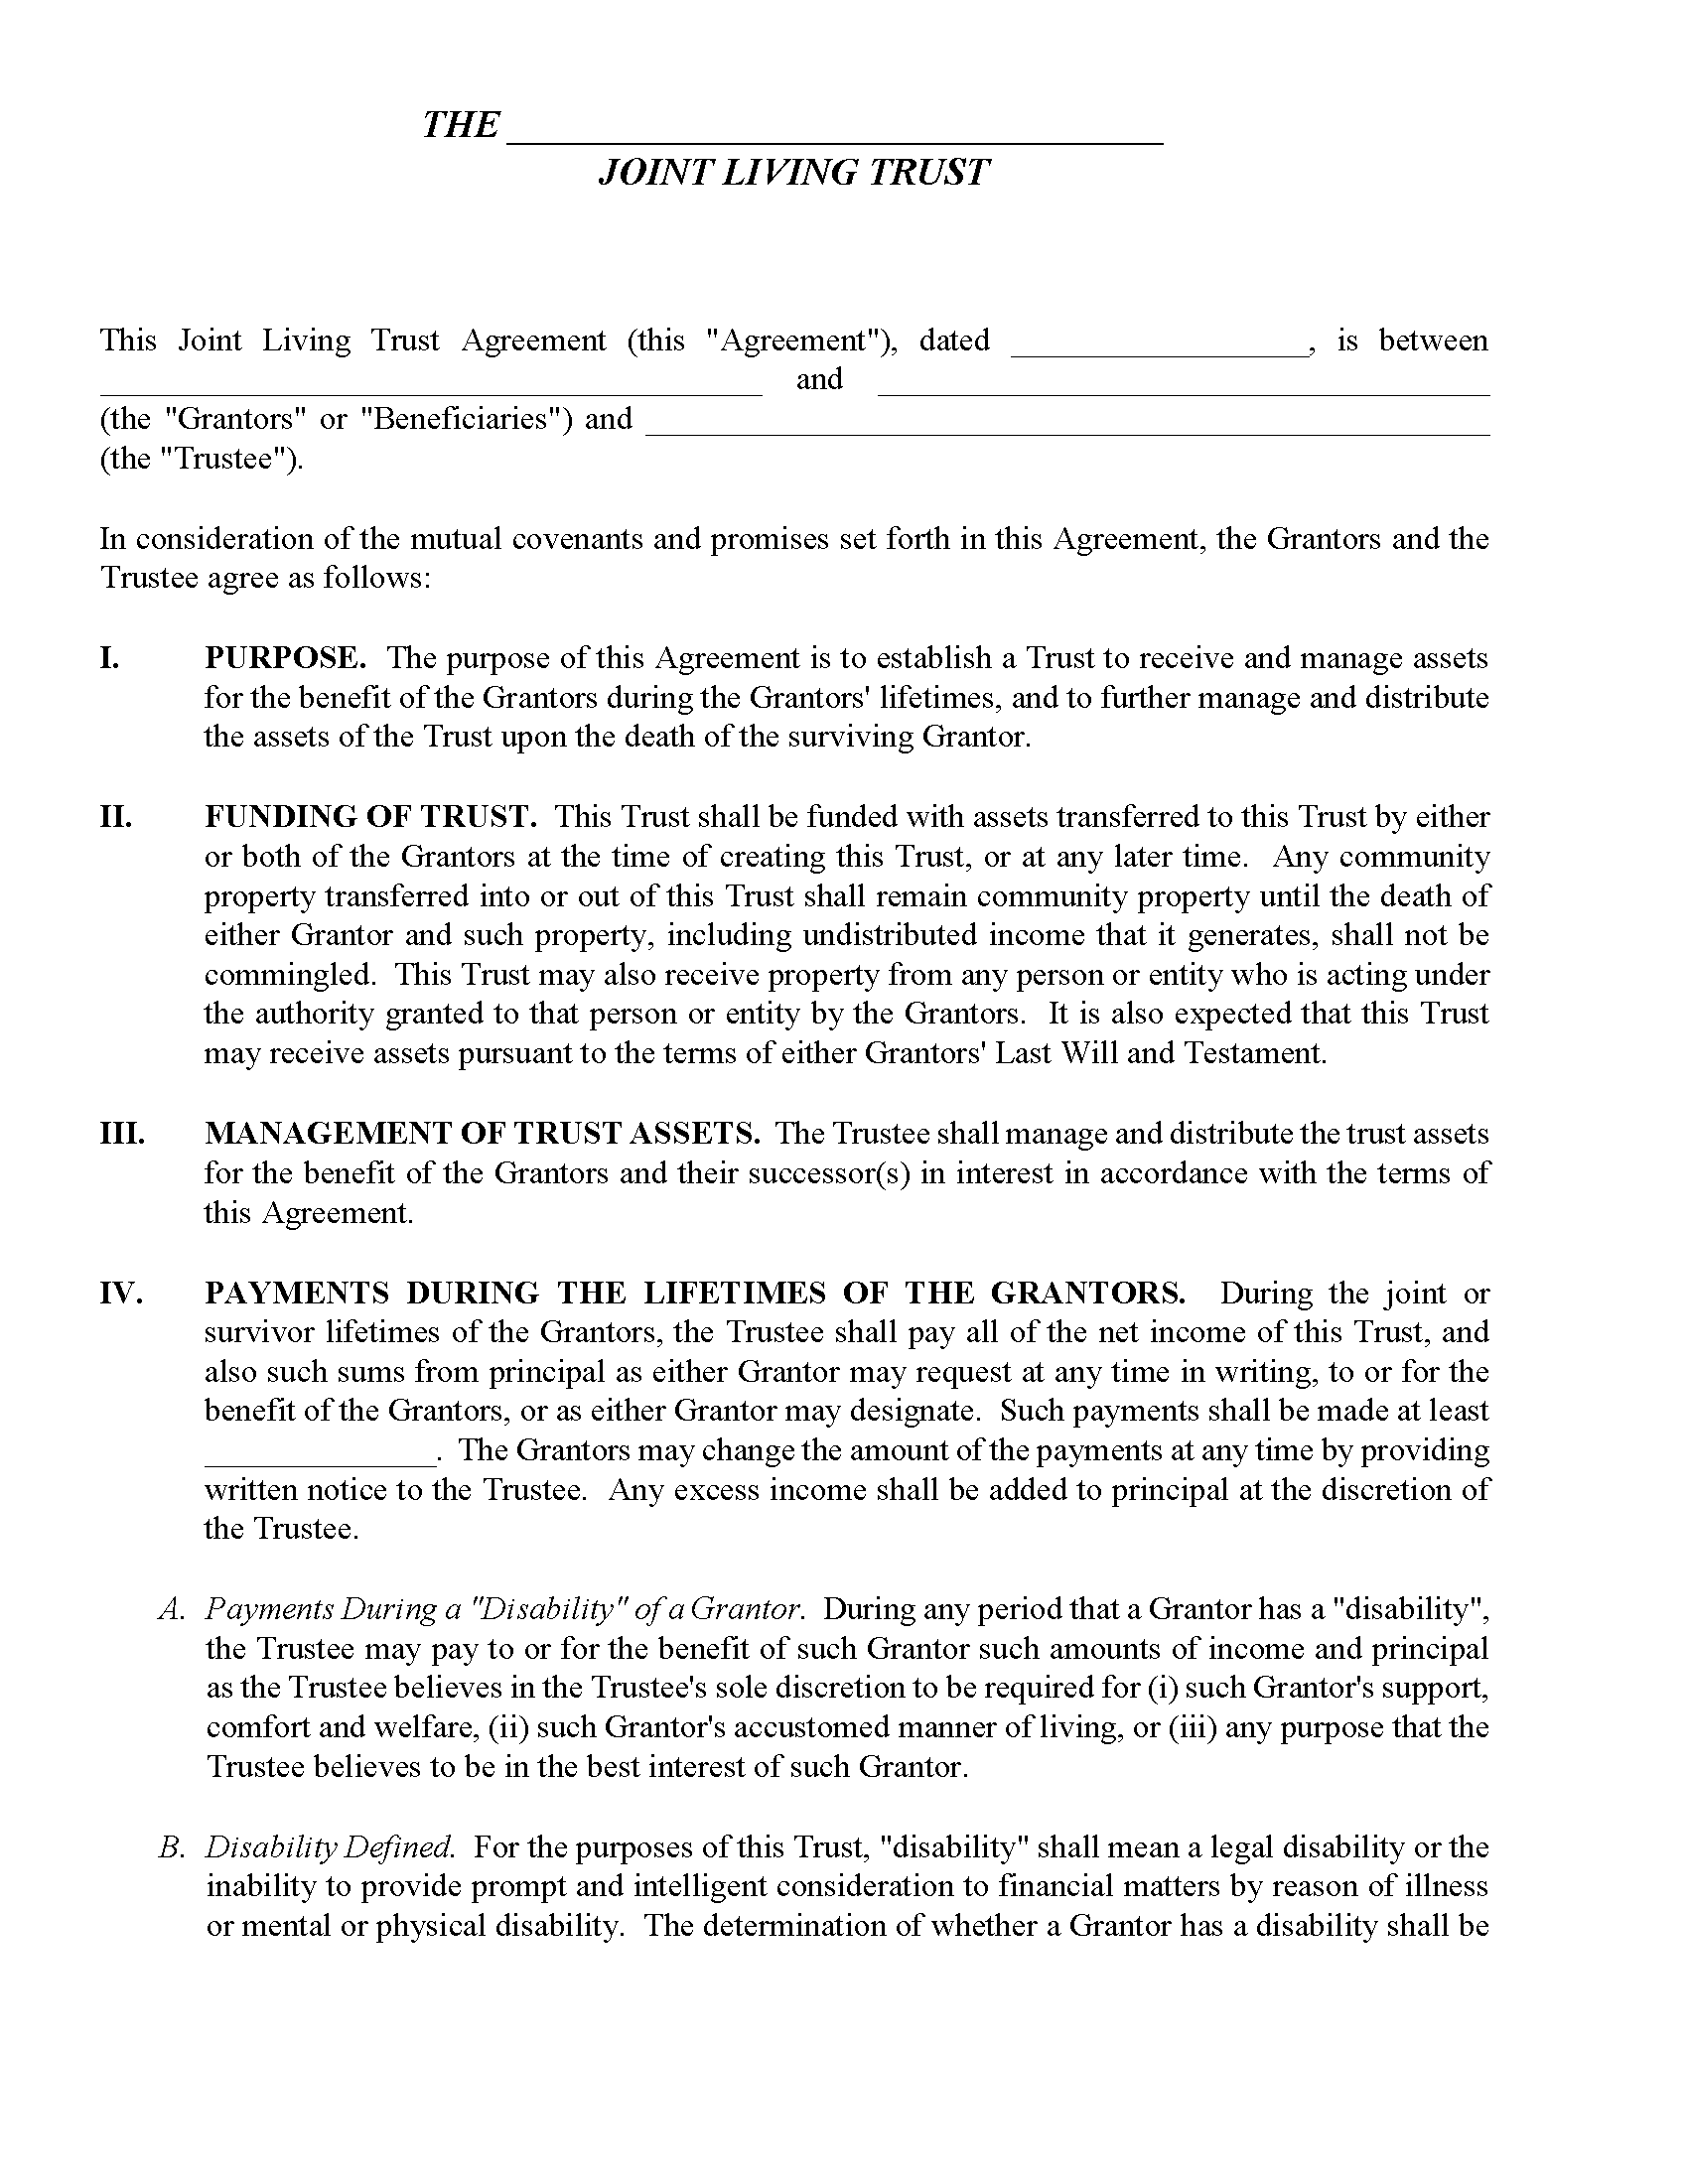 New York Joint Living Trust Form